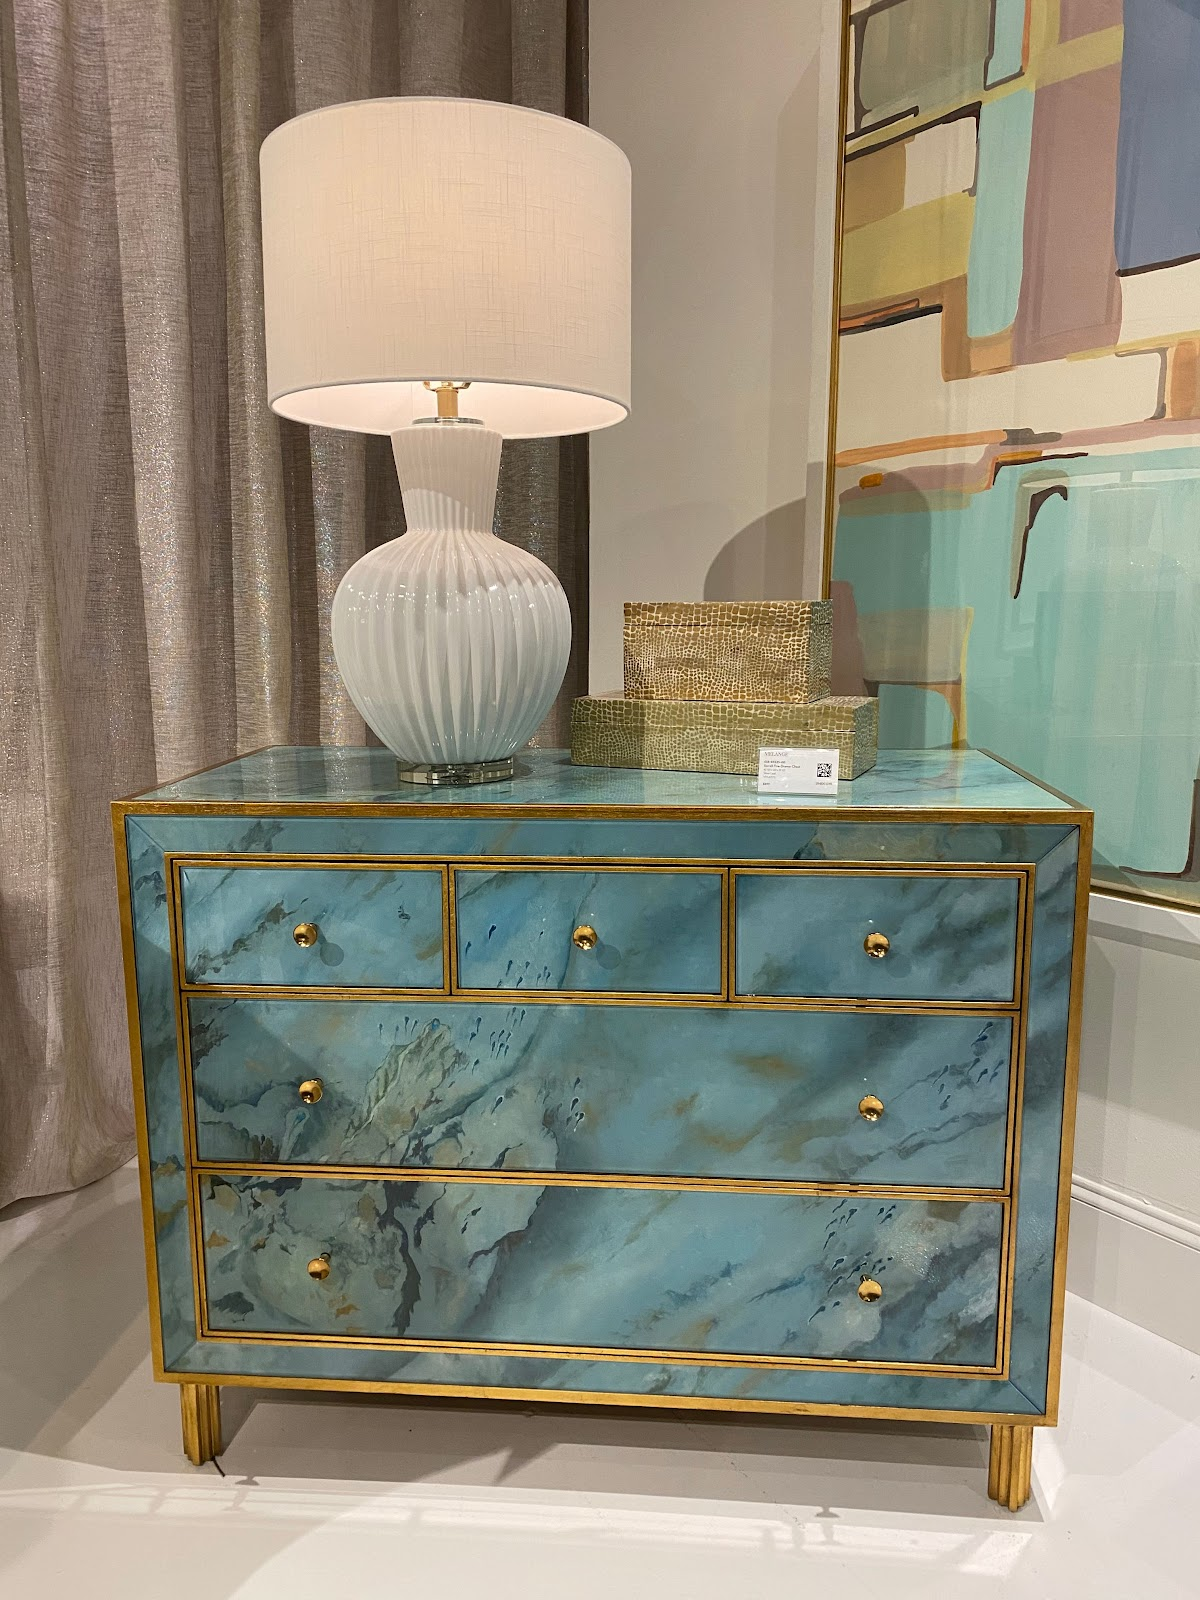 latest trends in interior design 2021 home decor turquoise blue console superior construction and design